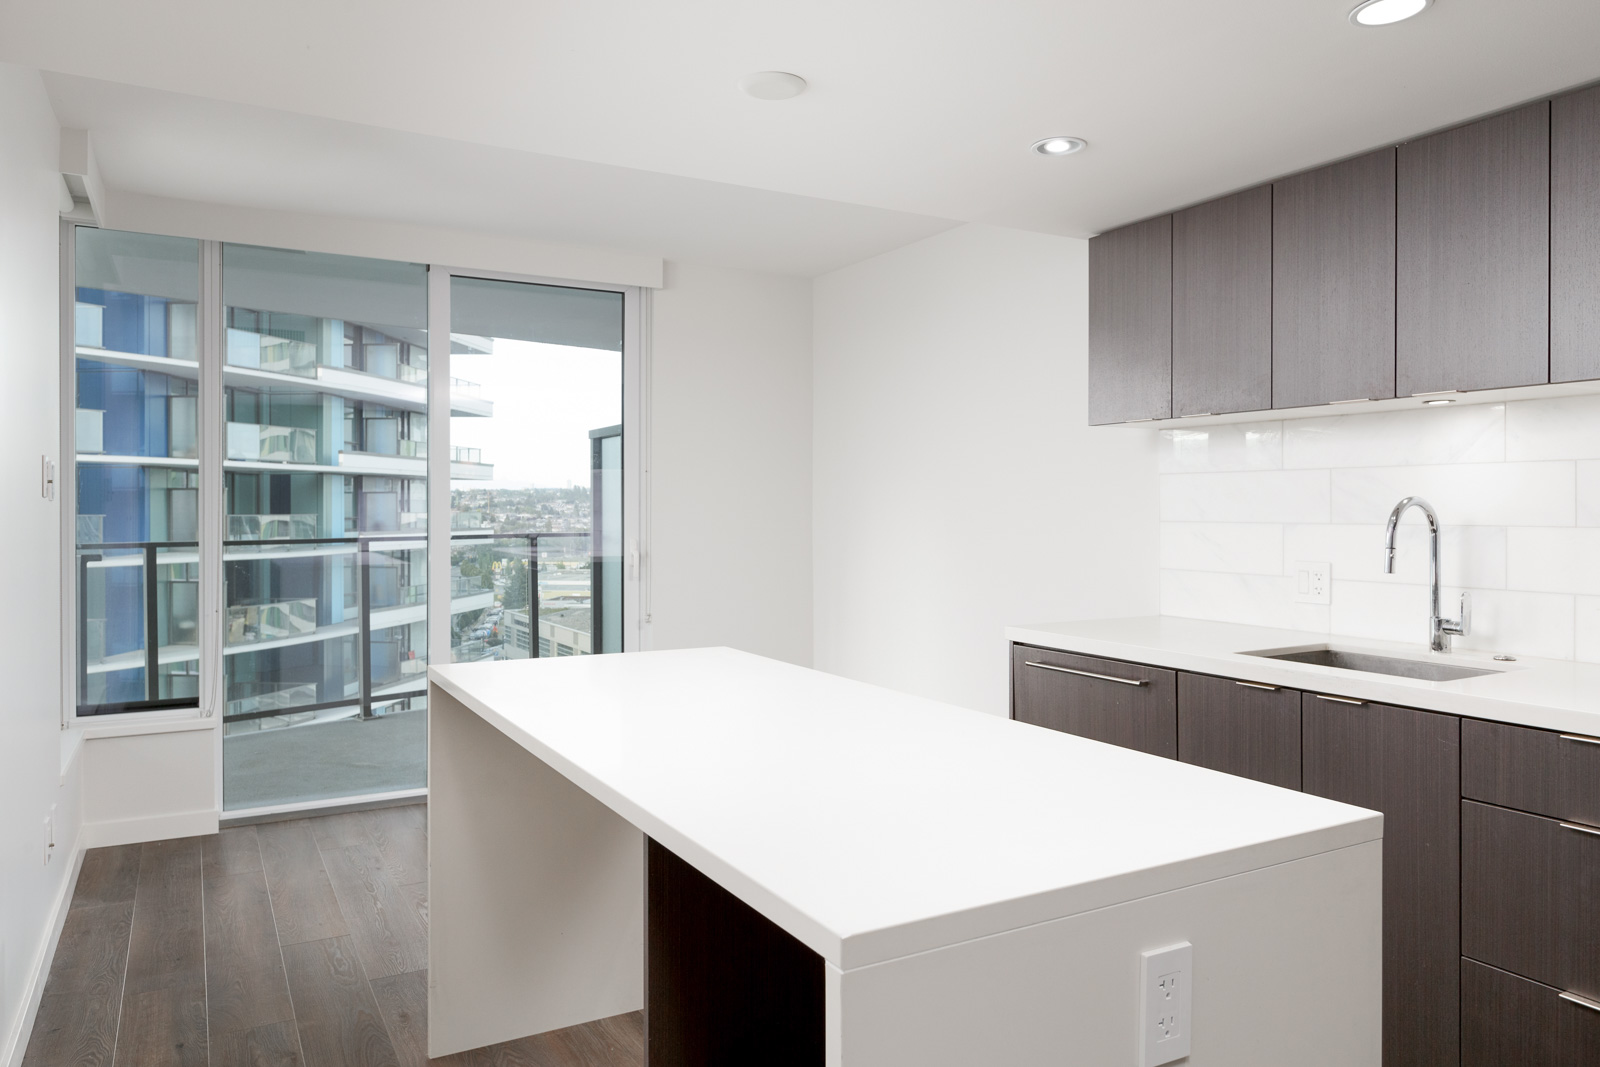 White kitchen island in luxury Vancouver condo.